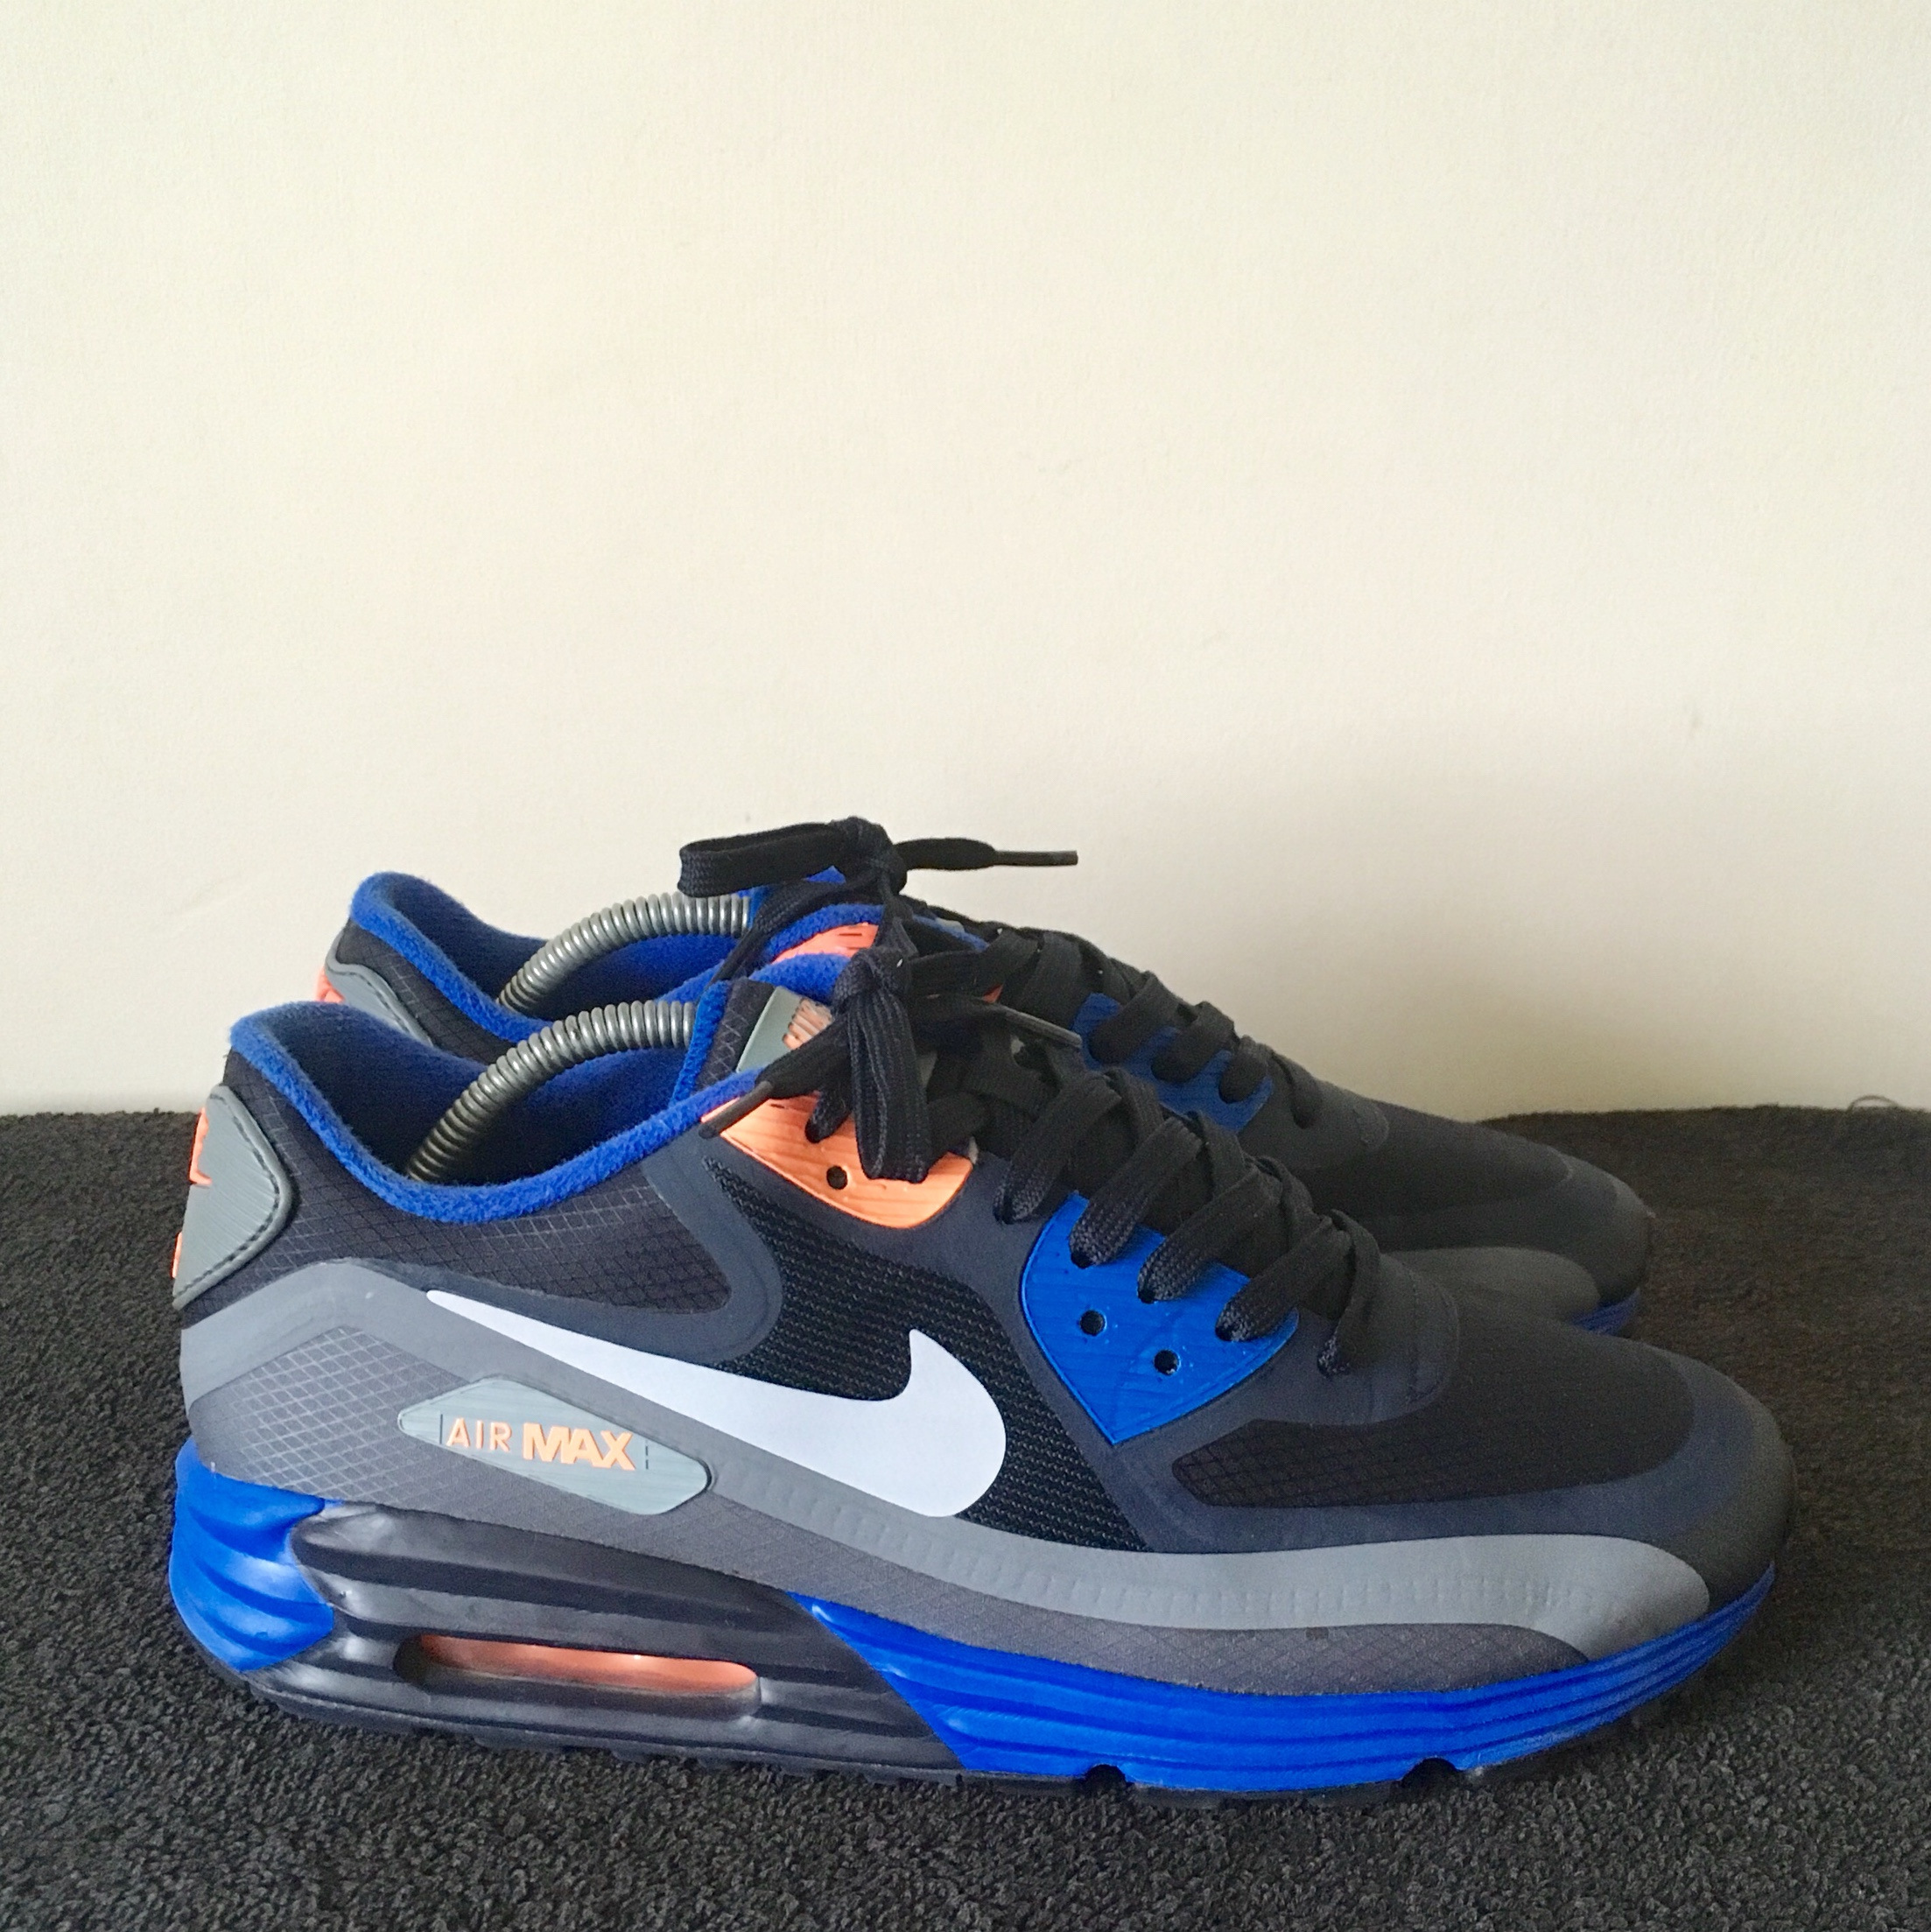 Nike Air Max 90 Size 8 Condition- very